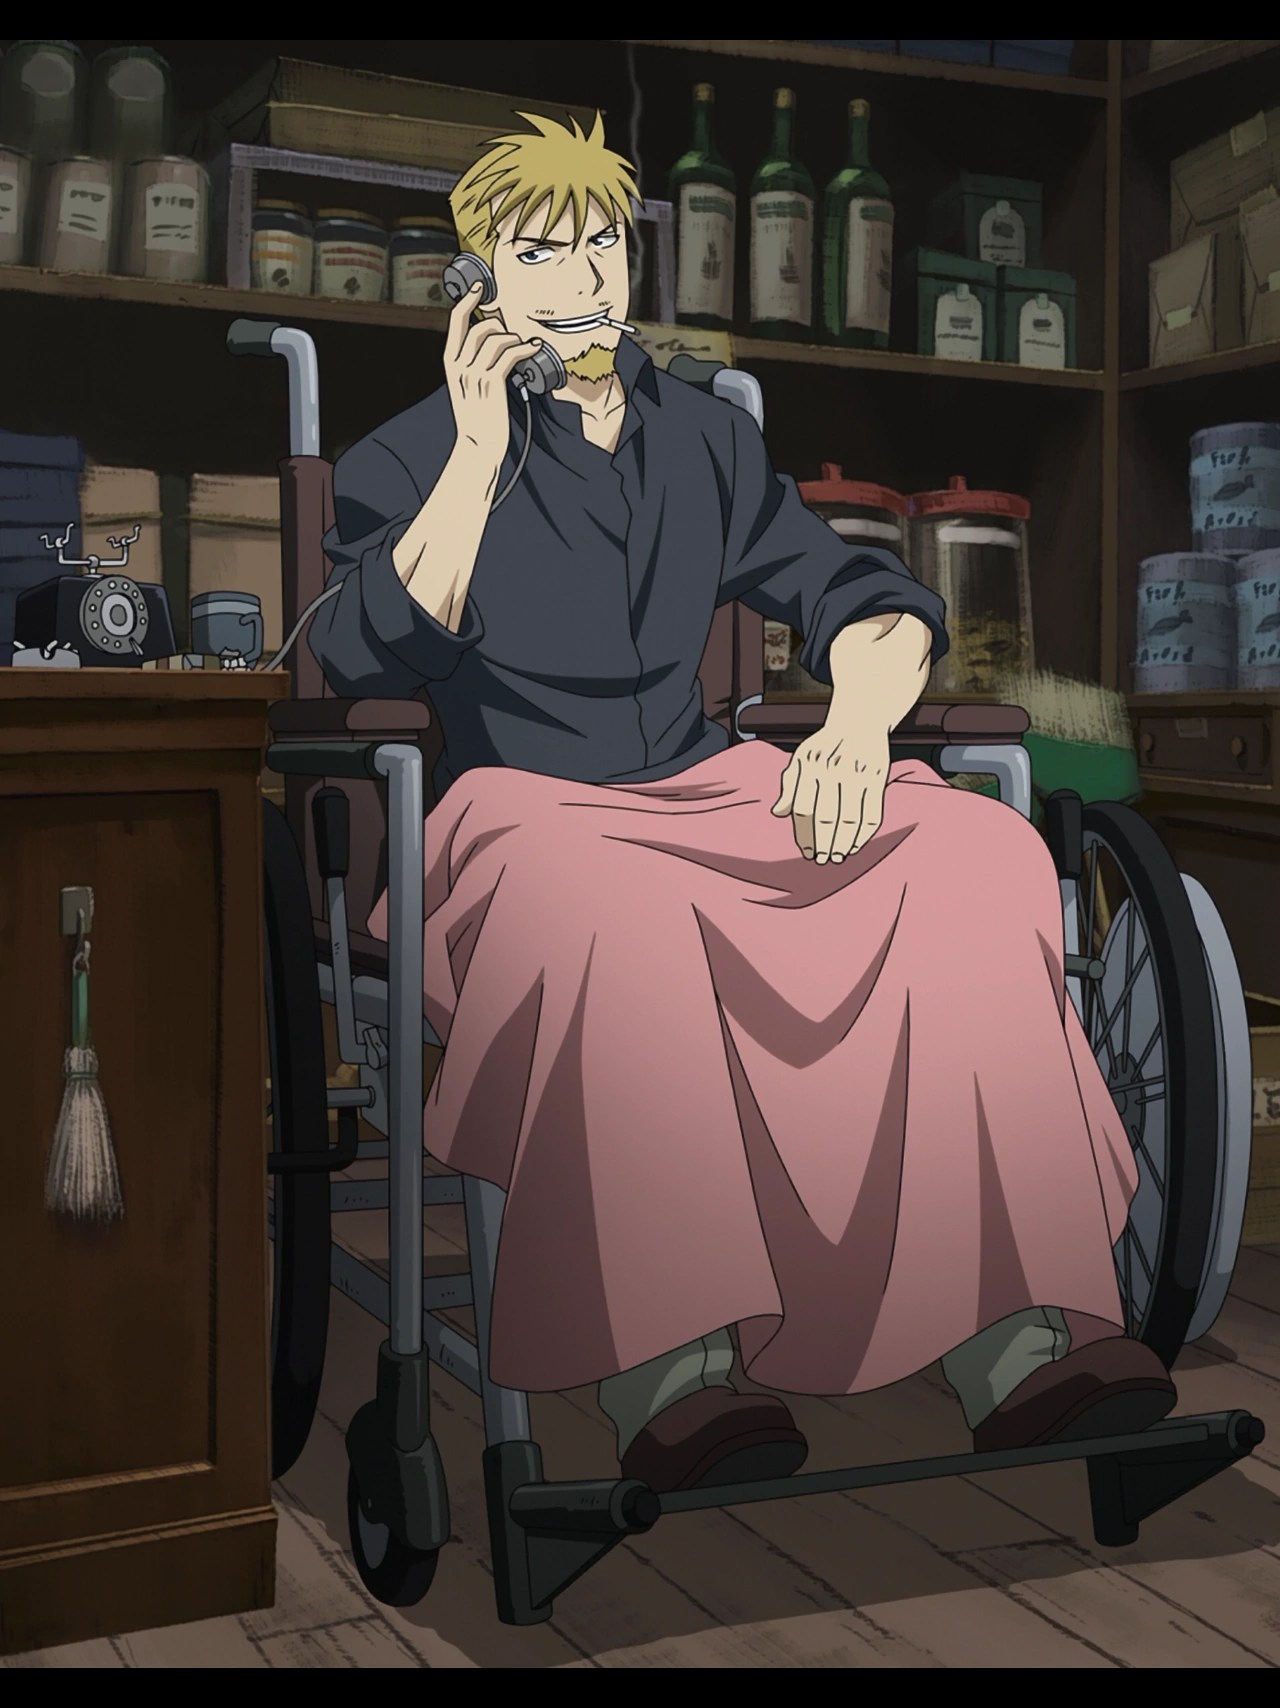 Jean Havoc  Fullmetal Alchemist Wiki  FANDOM powered by